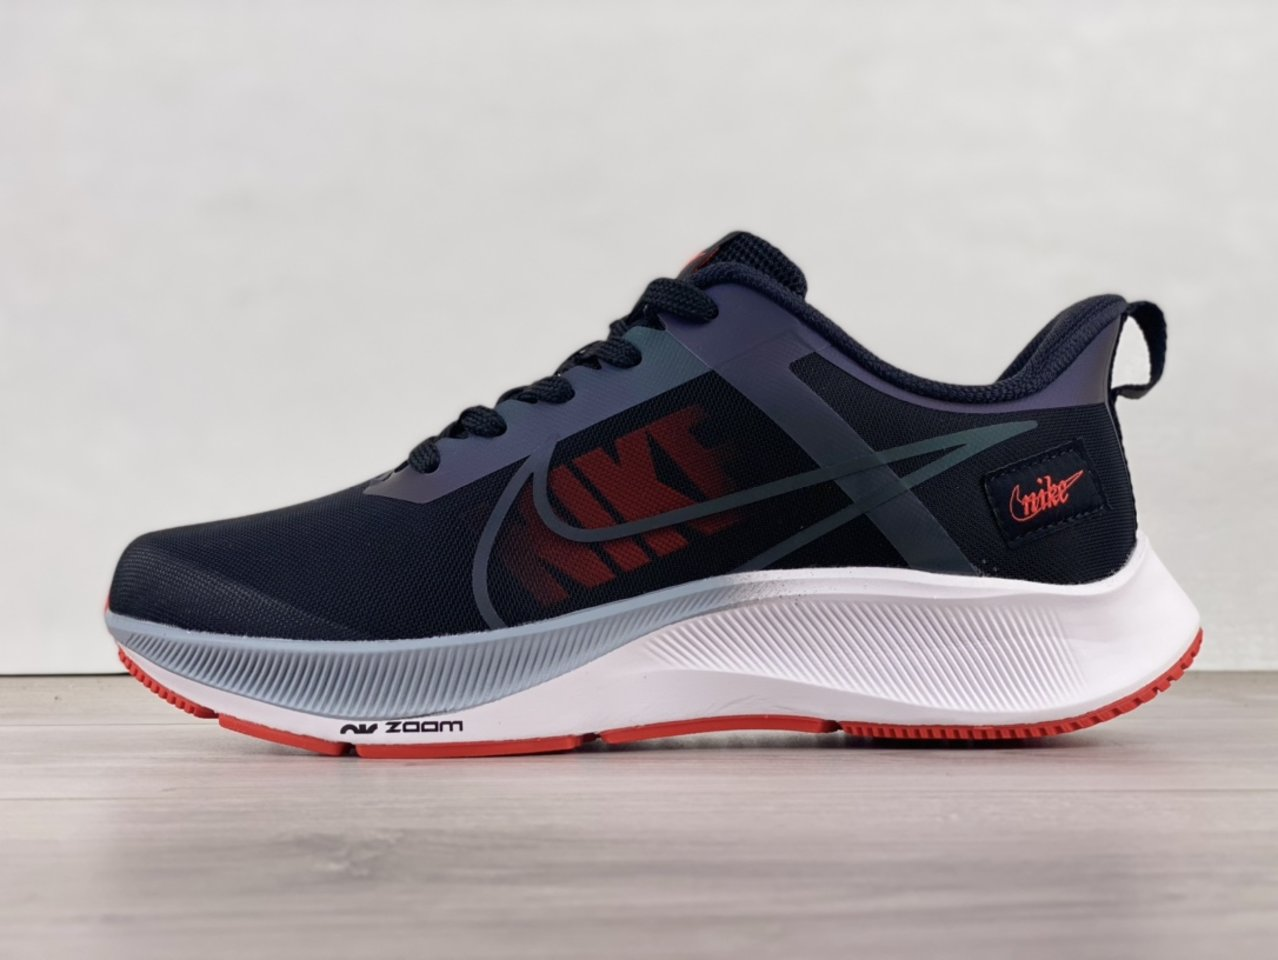 2021Nike Air Zoom Structure 39X Black, Red and White Running Shoes DJ3128-200